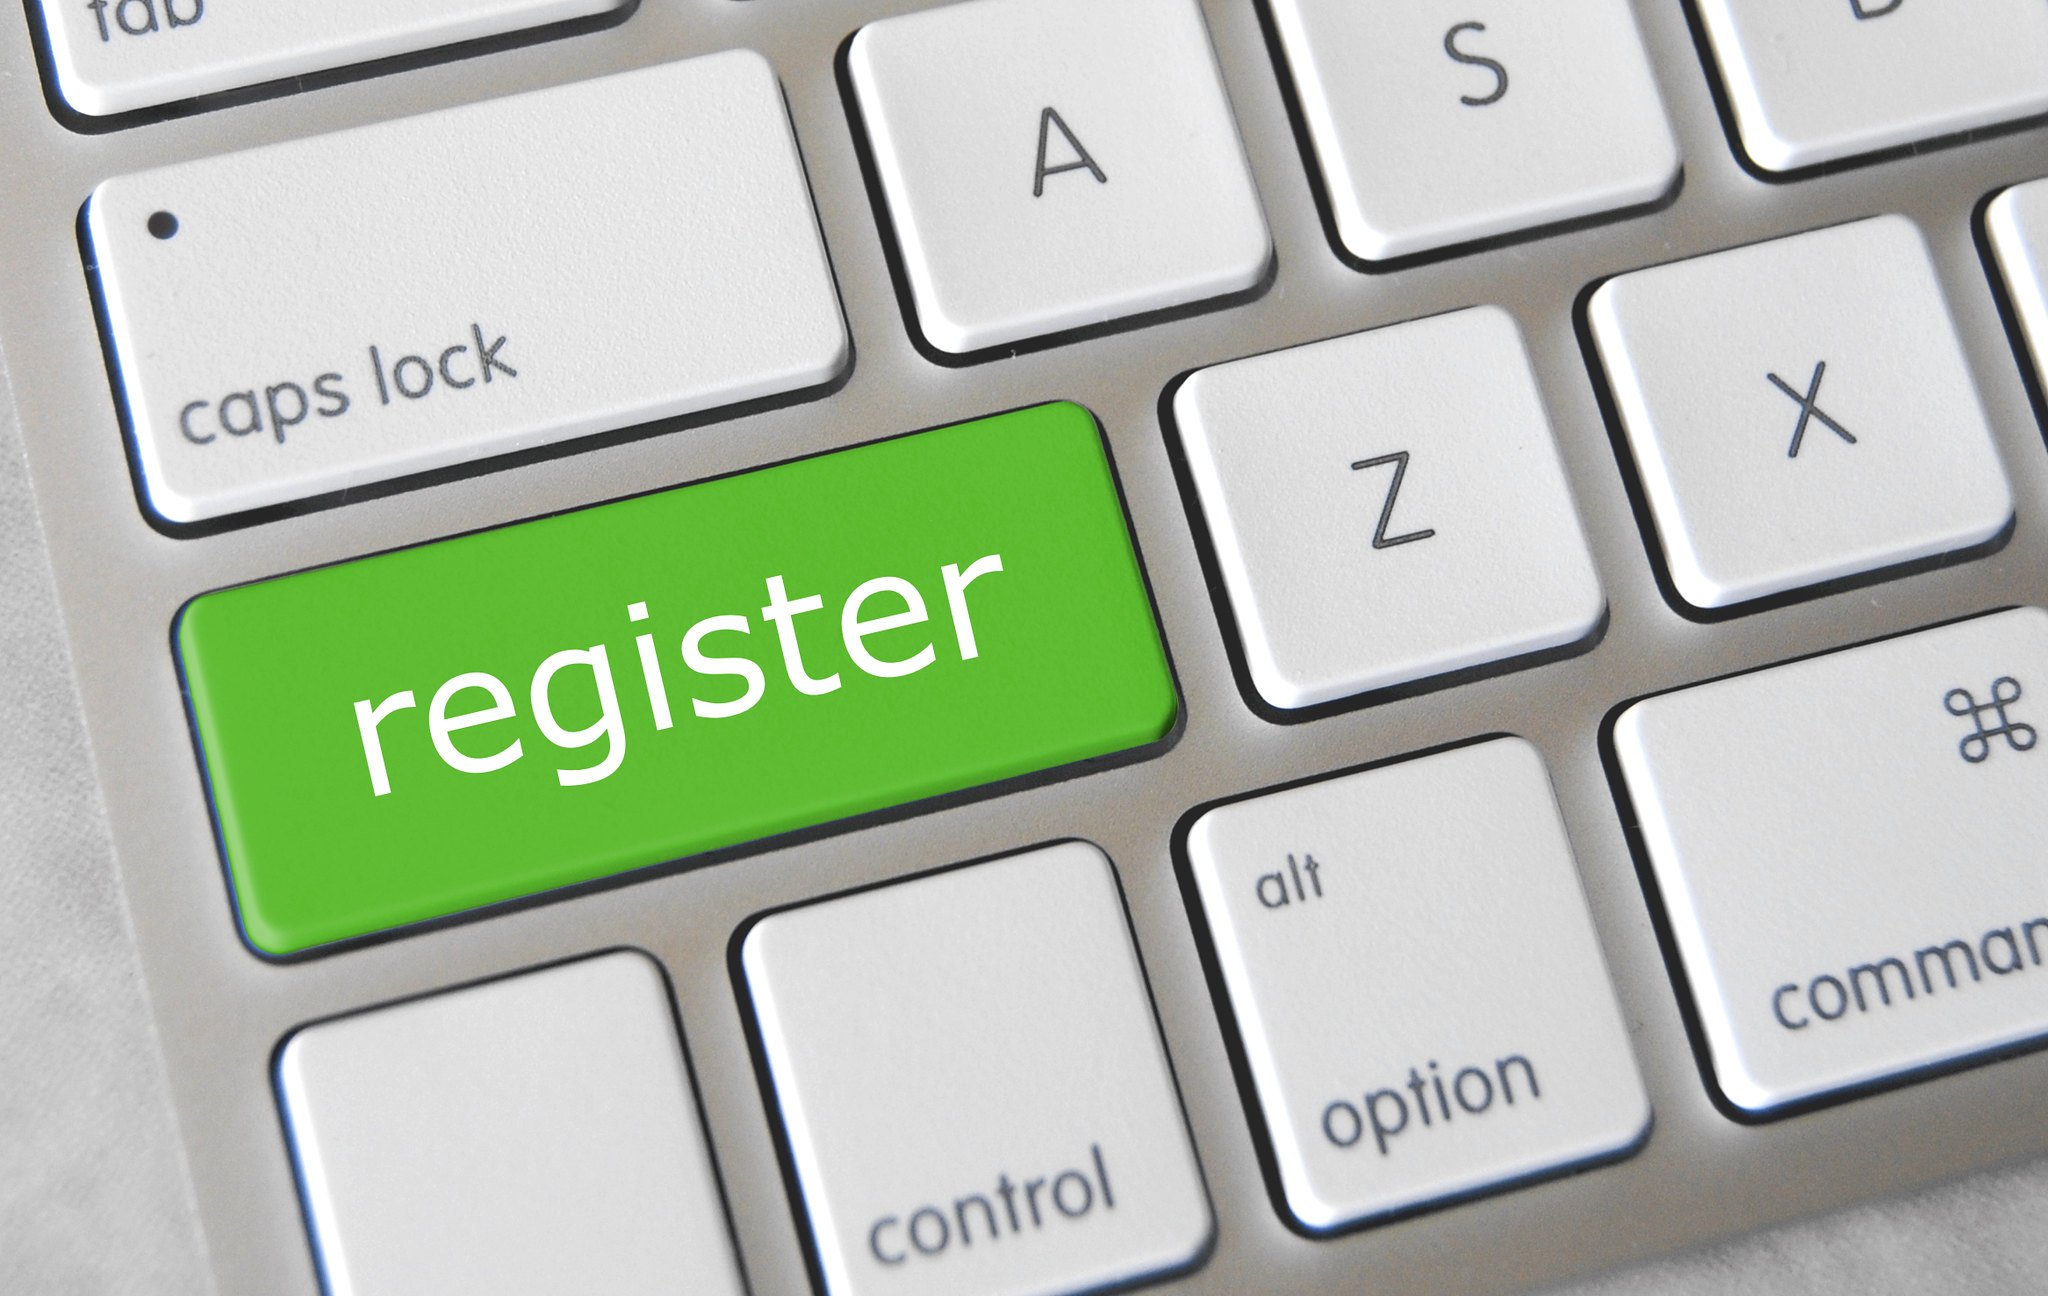 Register, online registrieren